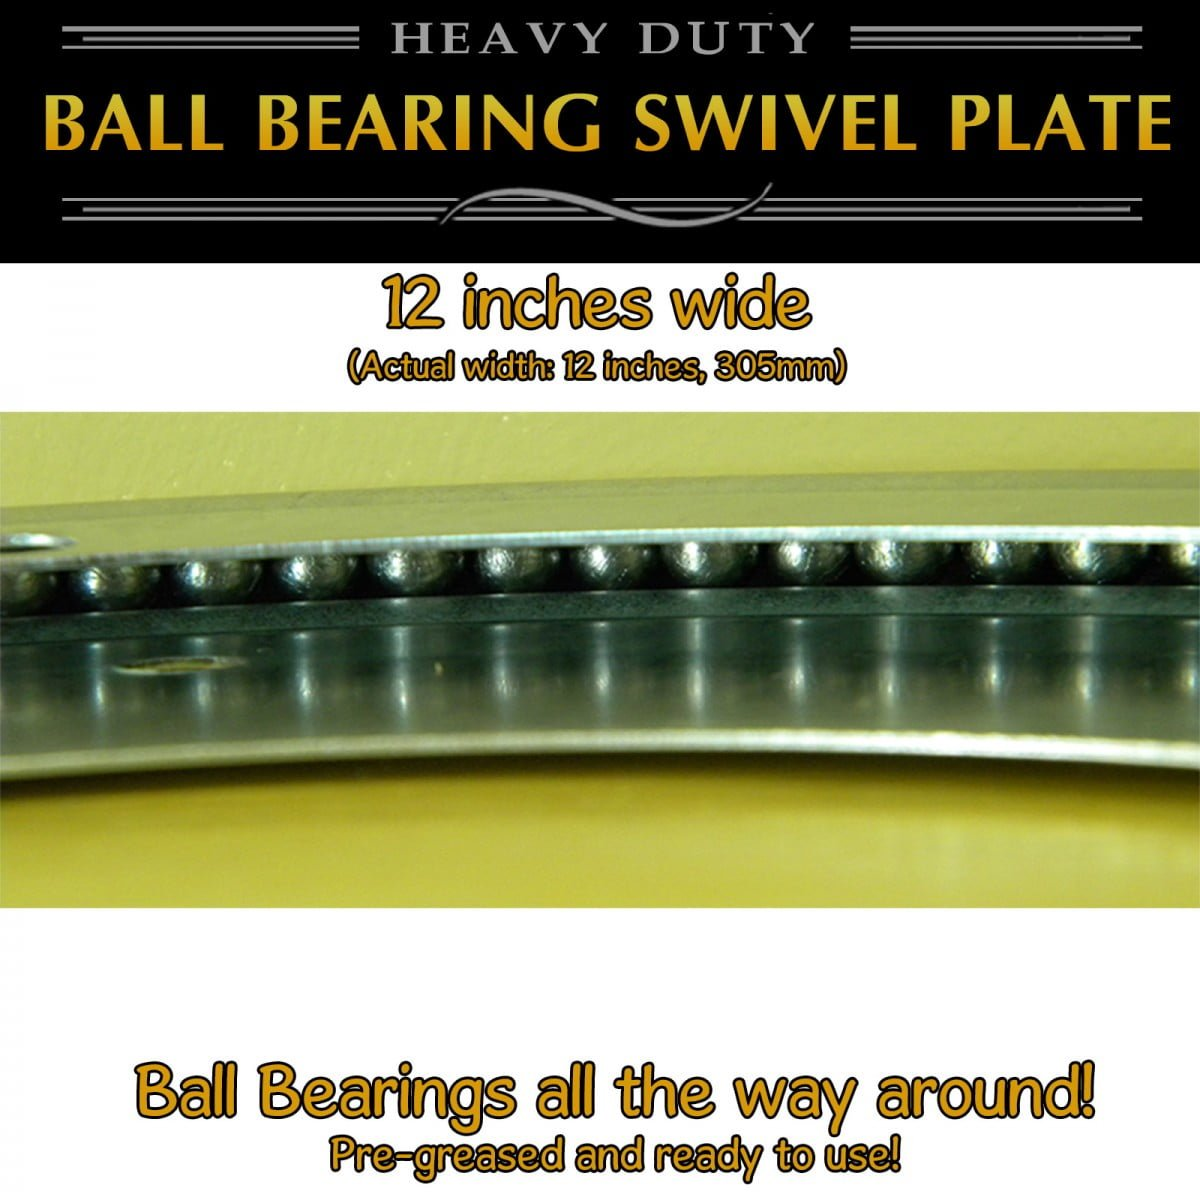 1 pc 12 inch - Full Ball Bearing Swivel Plate Lazy Susan Turntable 305mm